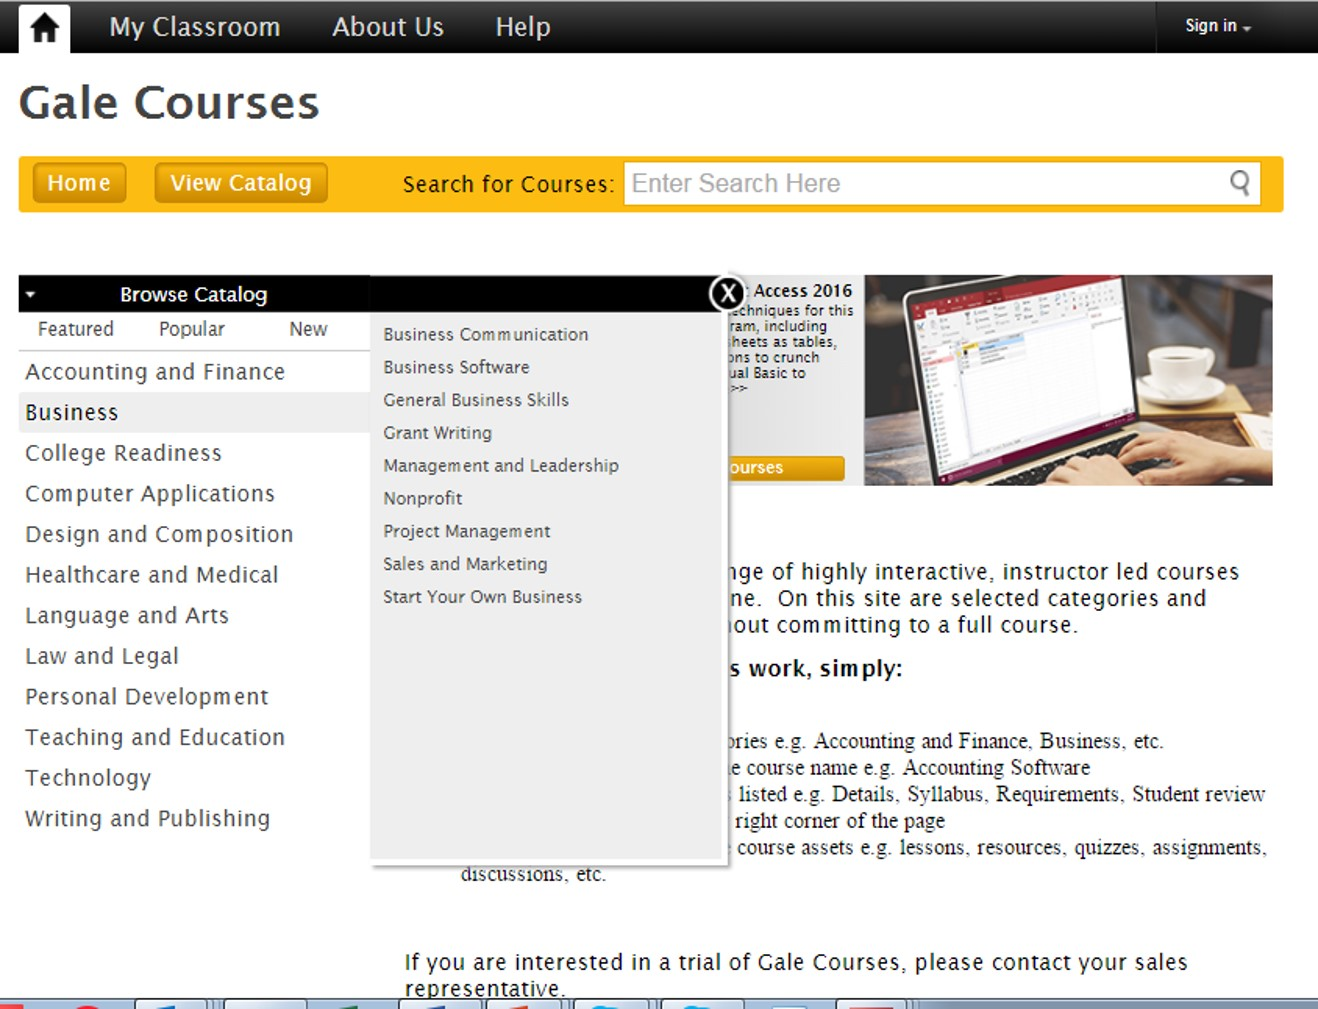 Gale Courses